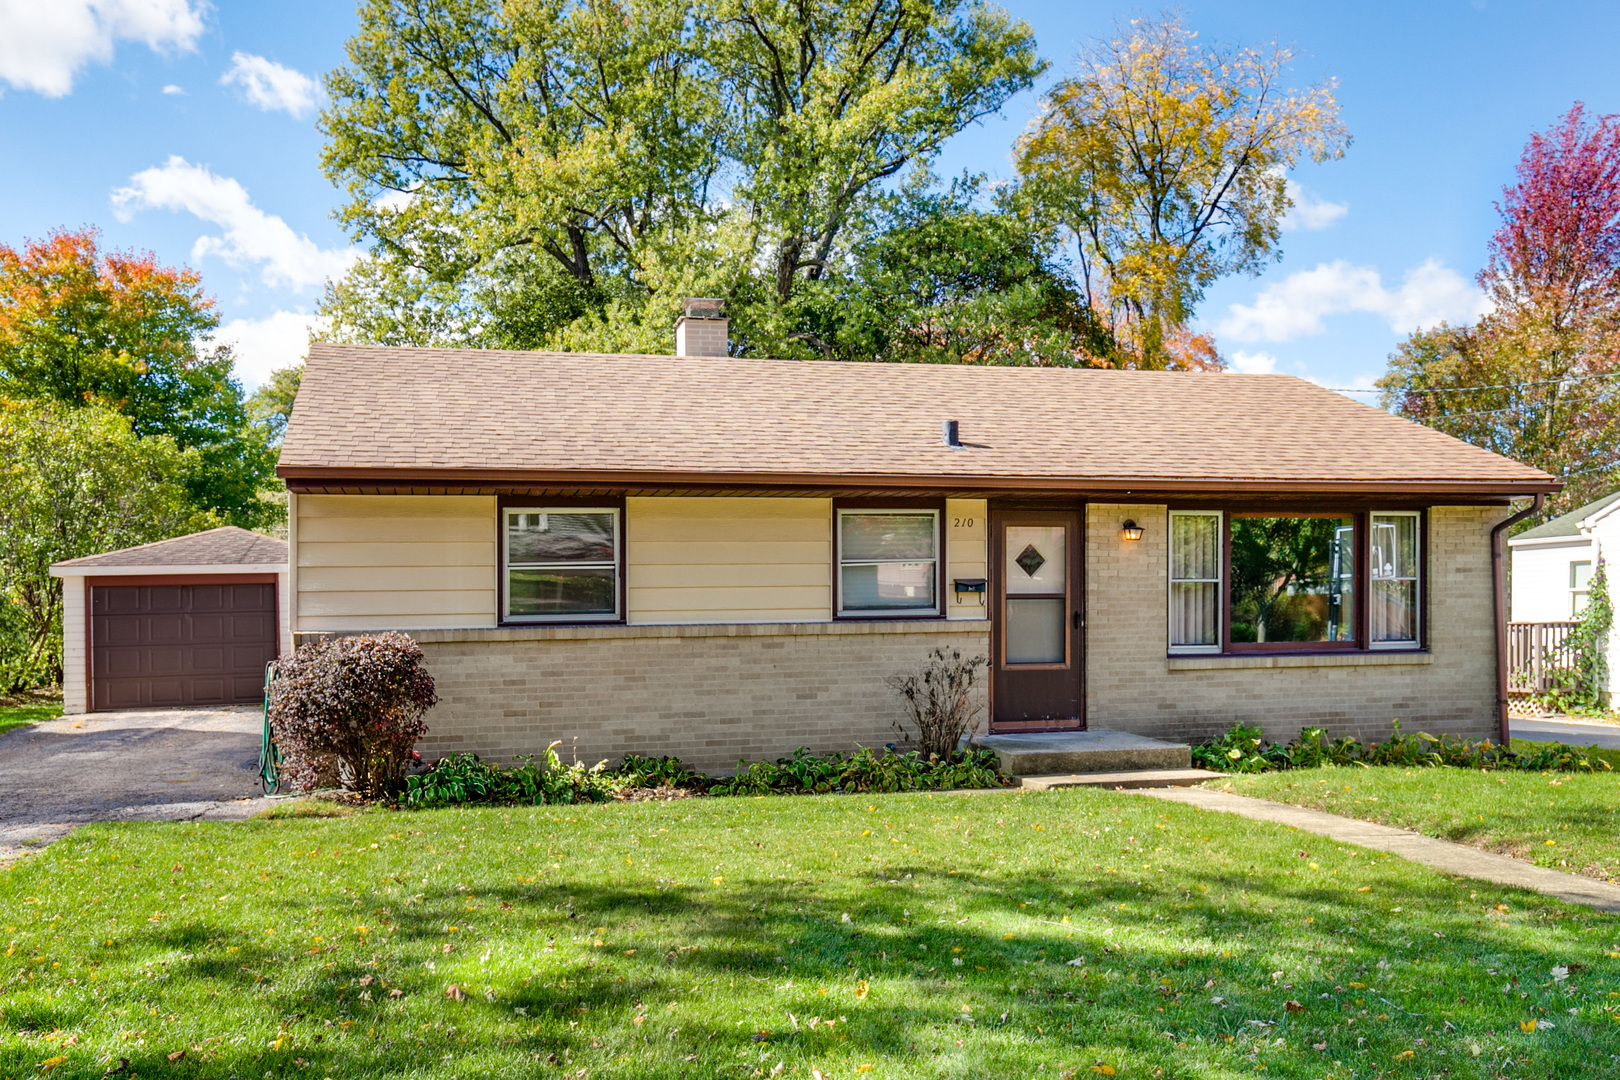 Photo for 210 Second Street, Crystal Lake, IL 60014 (MLS # 10907379)